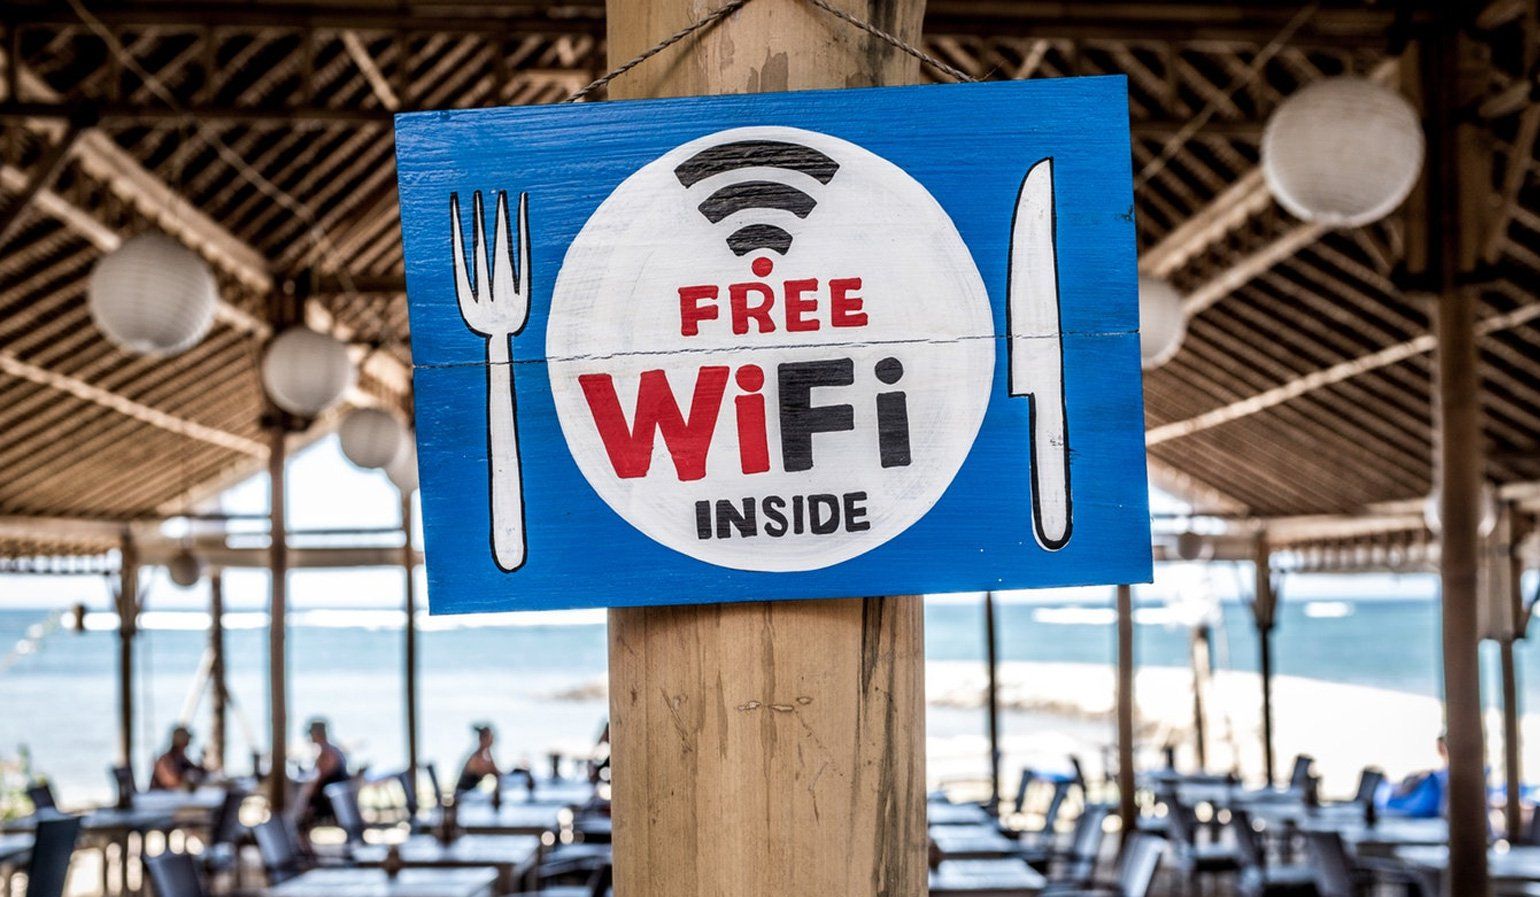 restaurant email list building - Free Wi-Fi in restaurant